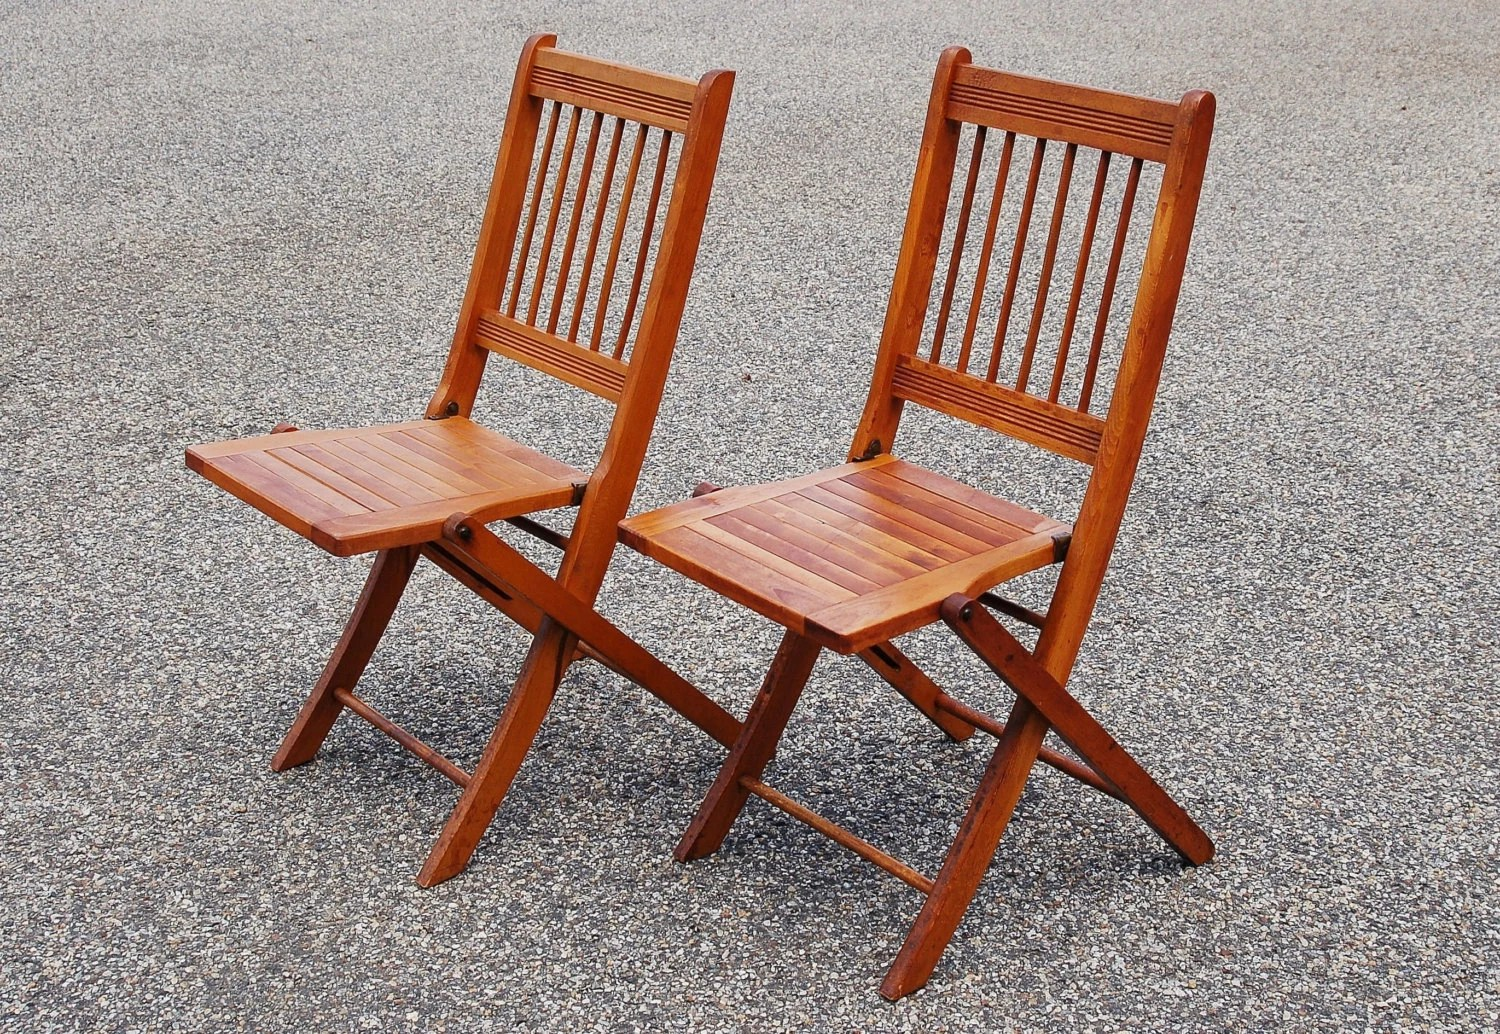 Nice Folding Chairs 2 Folding Wood Chairs Pair Of Wood Slat Folding Chairs Dowel